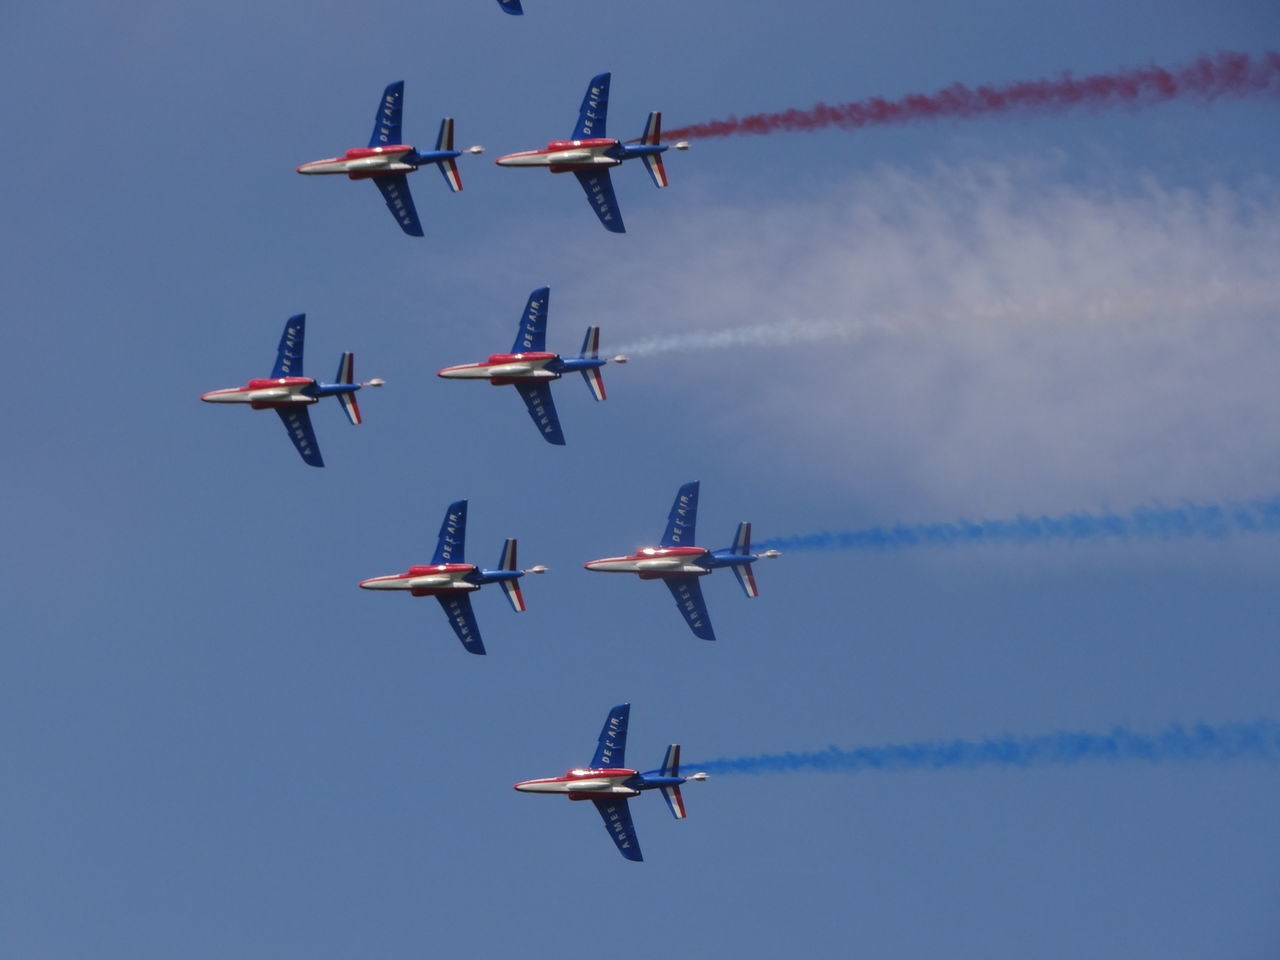 airplane, airshow, teamwork, transportation, flying, low angle view, vapor trail, sky, arrangement, mode of transport, air vehicle, on the move, smoke - physical structure, speed, fighter plane, blue, travel, accuracy, day, no people, military airplane, outdoors, formation flying, motion, propeller airplane, cooperation, cloud - sky, mid-air, air force, acrobatic activity, multi colored, aerobatics, nature